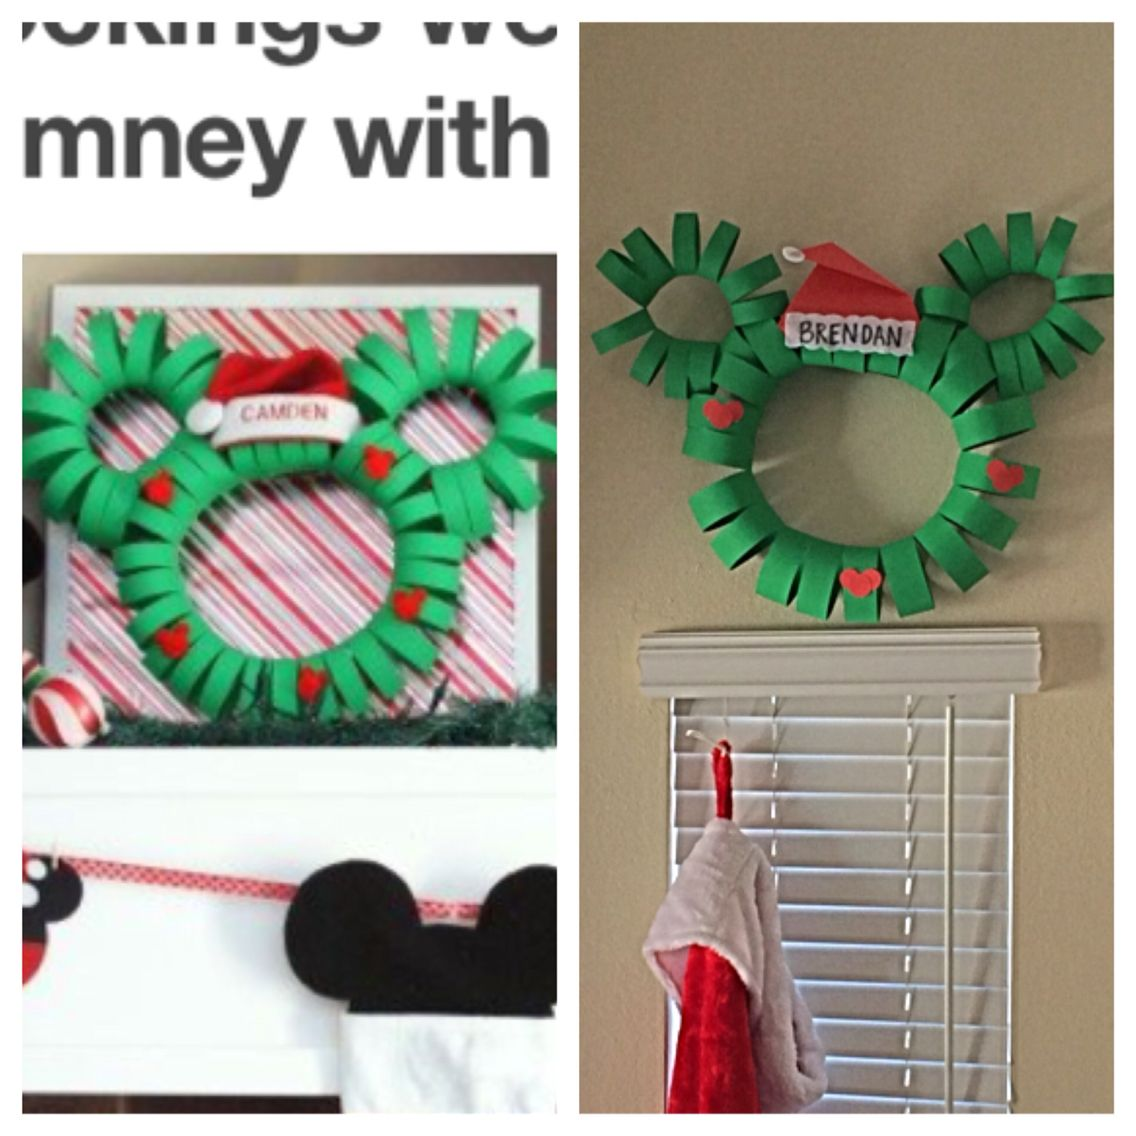 Mickey Mouse Paper Wreath. Fun EASY Project. $3 For Two Large Wreaths.  Dollar. Paper WreathsPoster BoardsChristmas Tree SkirtsProject ...